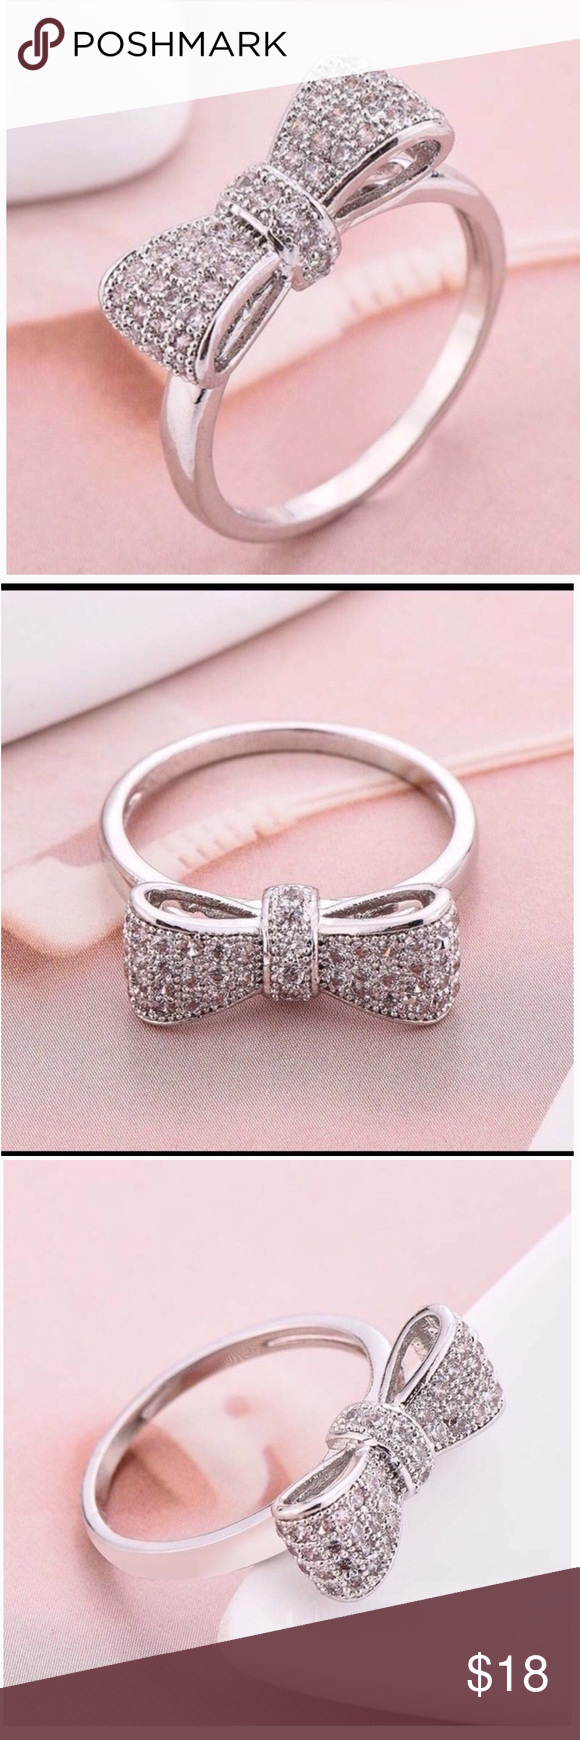 Natural gem stone sterling silver ring BRAND NEW Boutique | My Posh ...